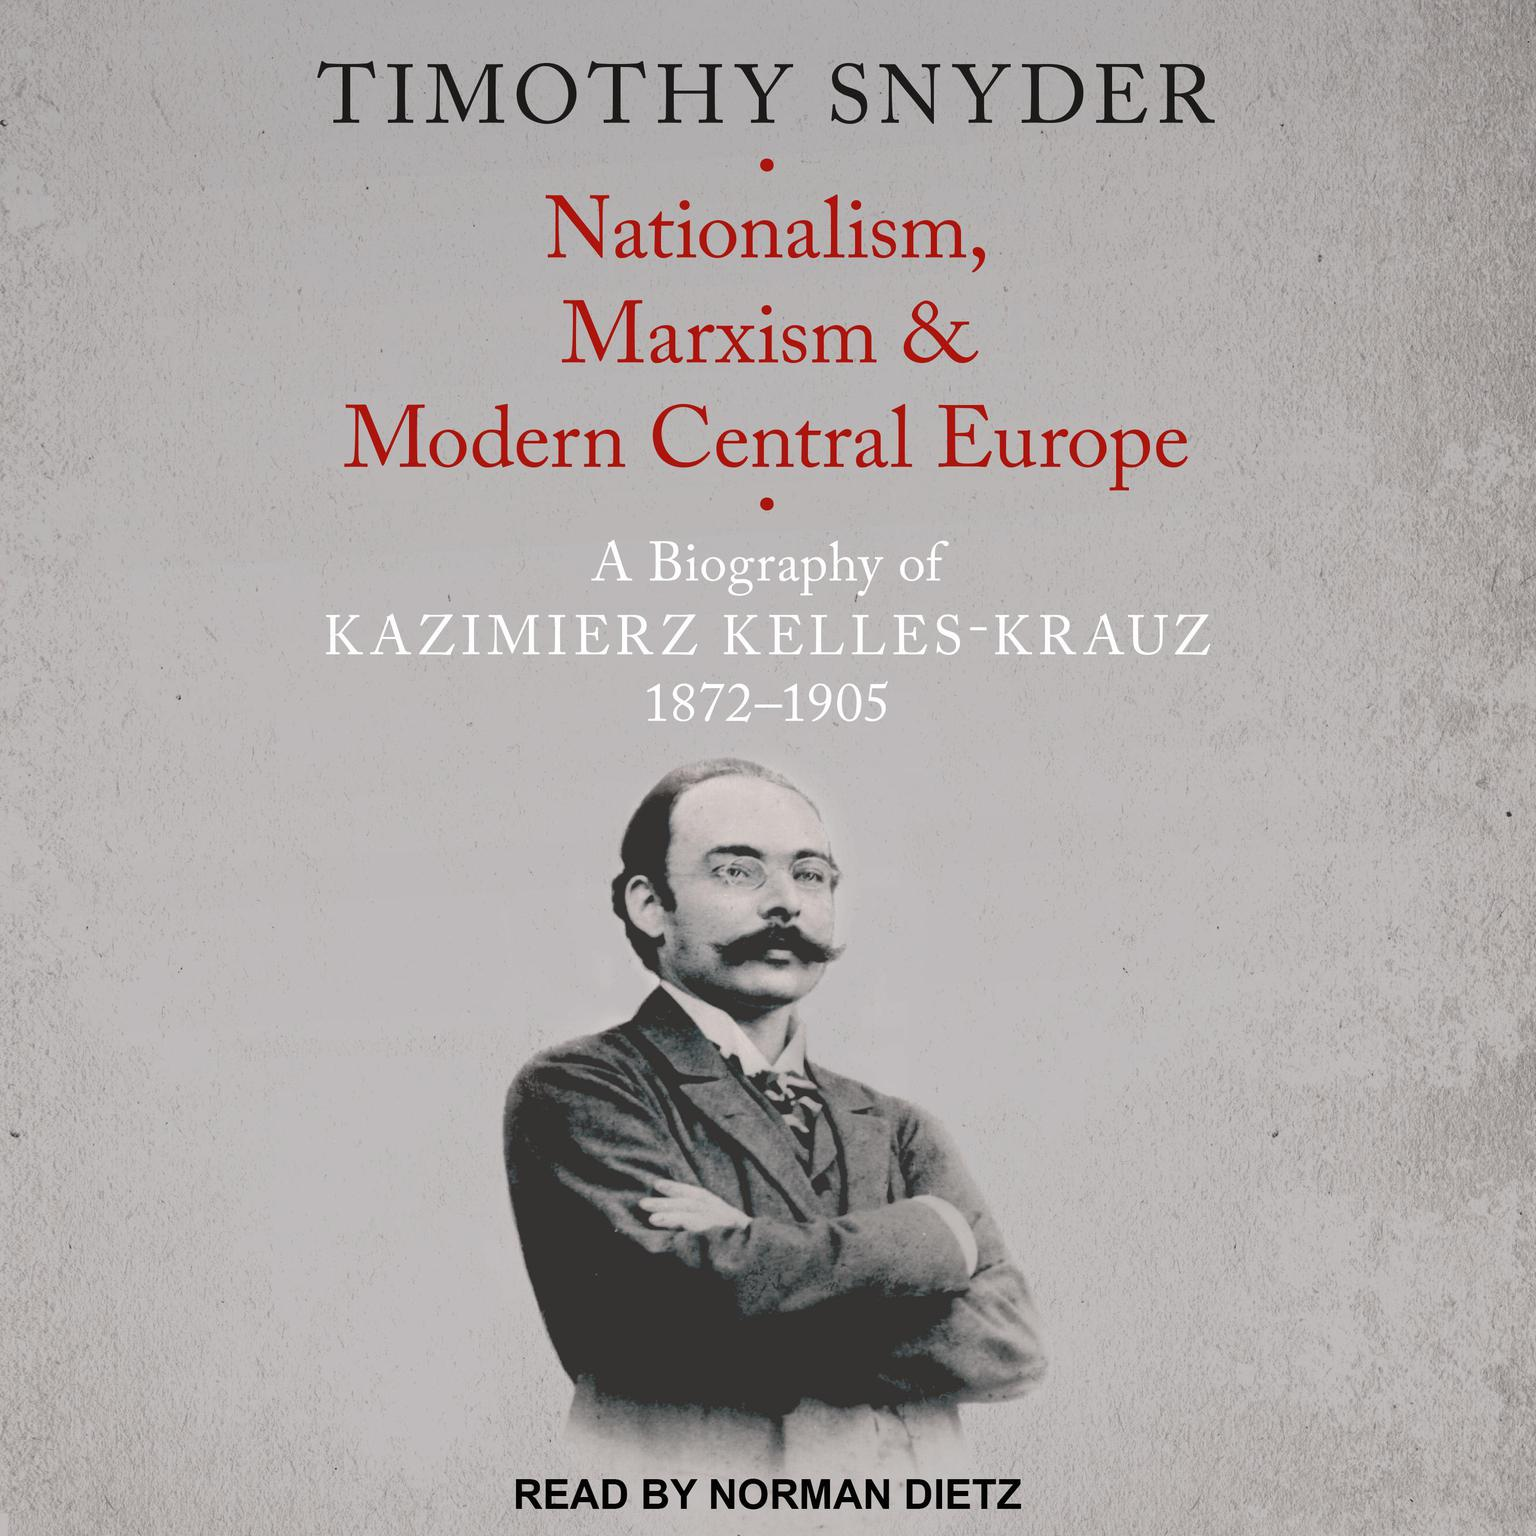 Nationalism, Marxism, and Modern Central Europe: A Biography of Kazimierz Kelles-Krauz, 1872-1905 Audiobook, by Timothy Snyder